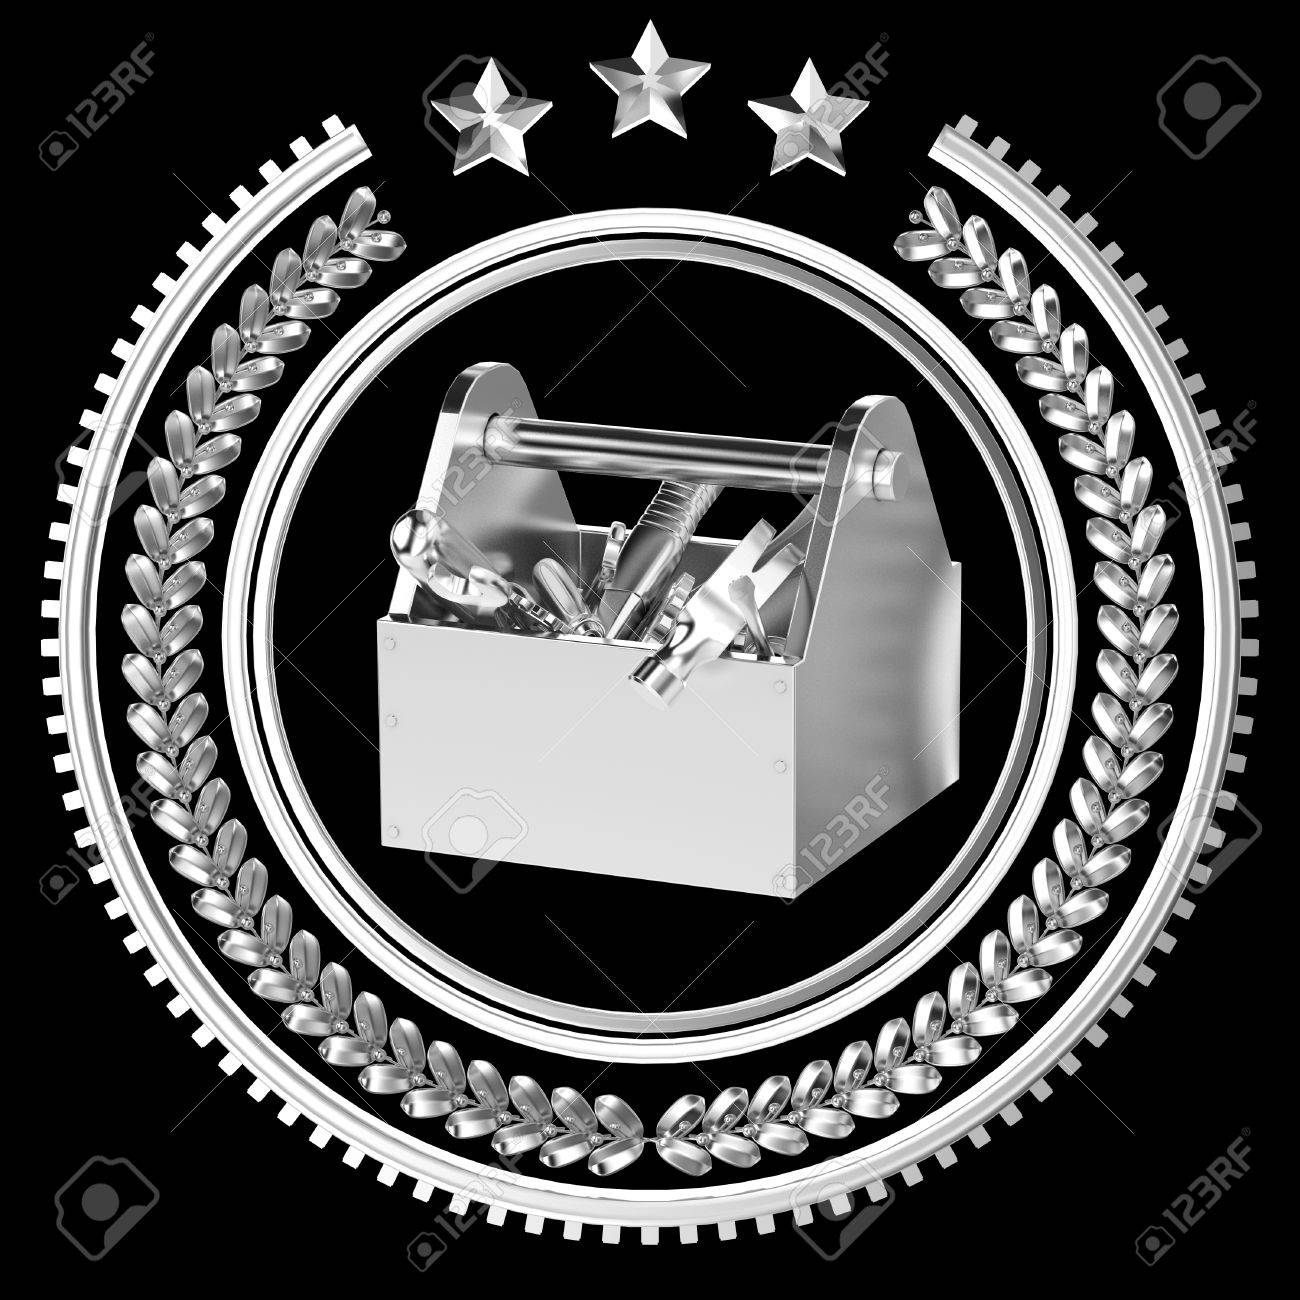 High Detailed Precious Metal Toolbox With Tools In Laurel Wreath Stock Photo Picture And Royalty Free Image Image 53559649